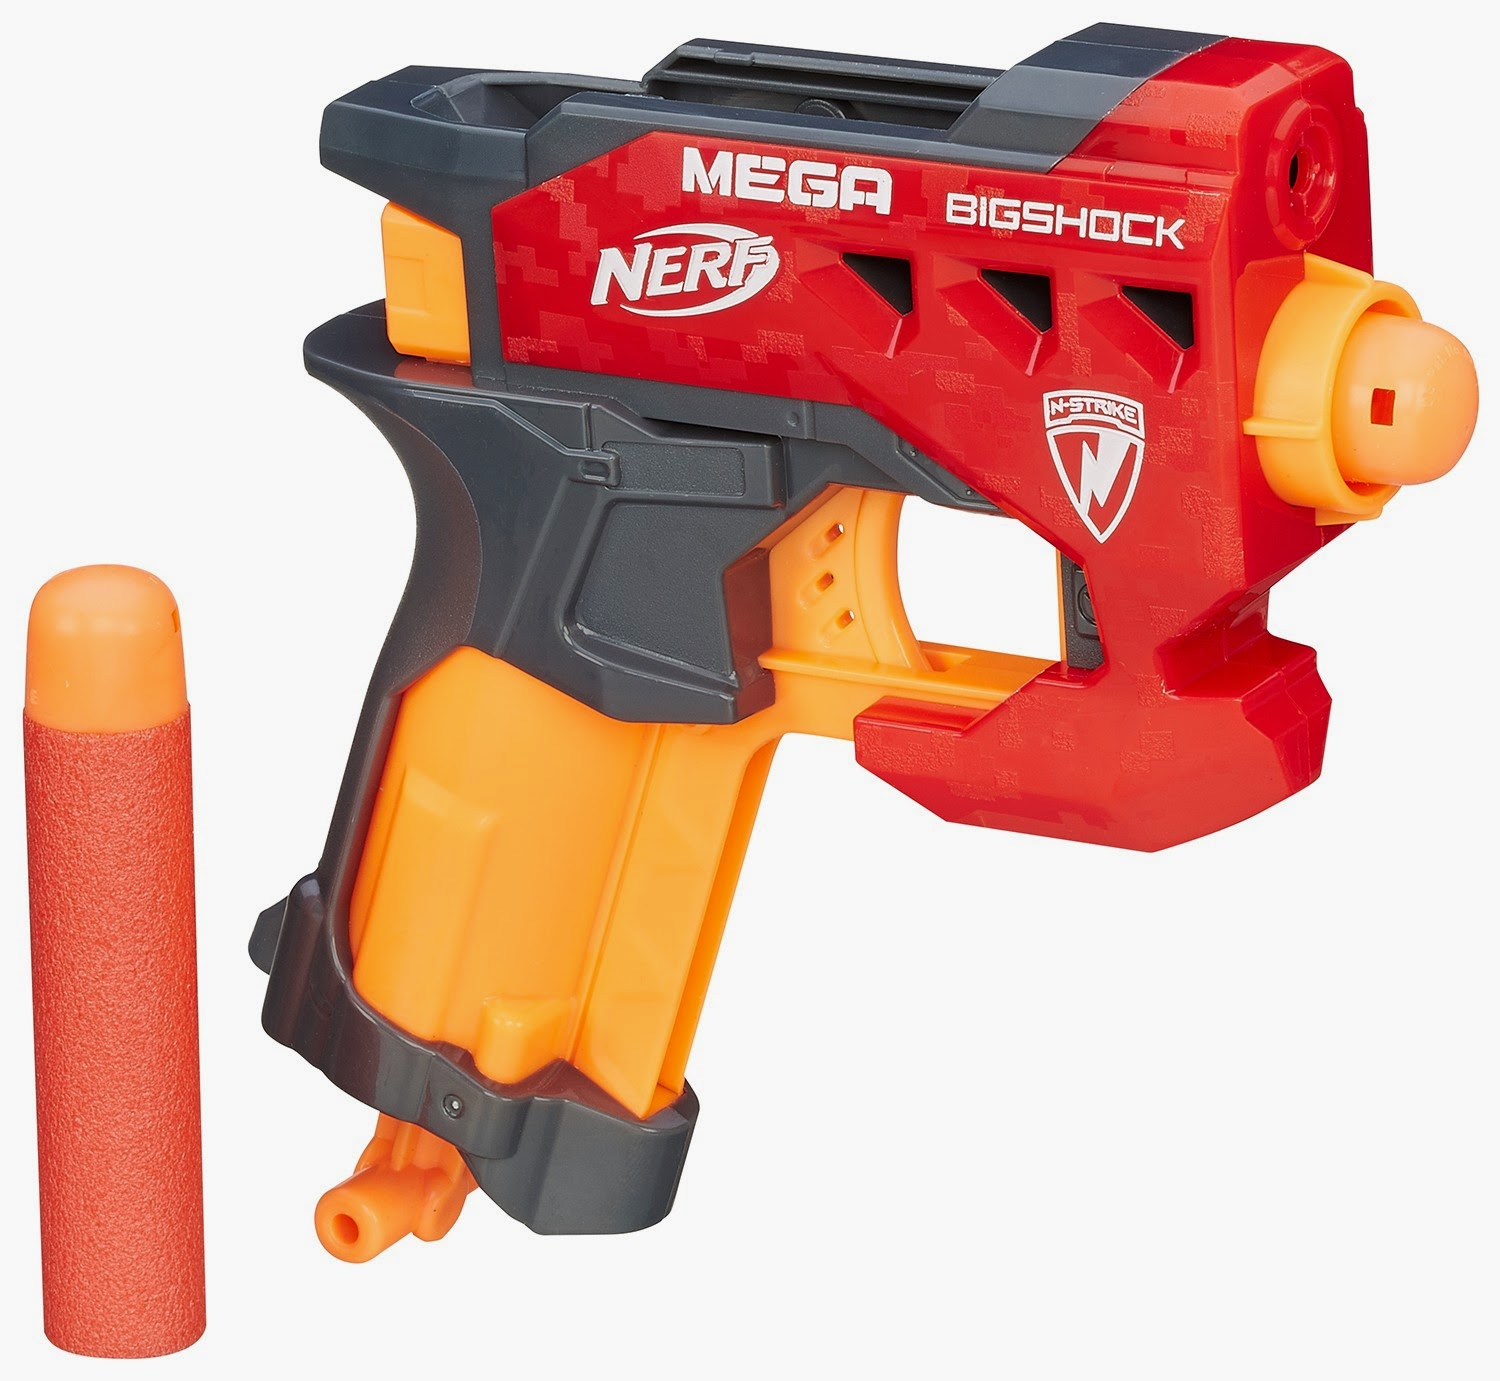 Hasbro Nerf Dart Tag Sharp Shot Blaster in addition Watch moreover 59f1780e3cde3f217c4247ef as well Achat pistolet Nerf Blaster also Nerf N Strike Mega Bigshock Gun Toy 3855393. on nerf n strike mega bigshock blaster by